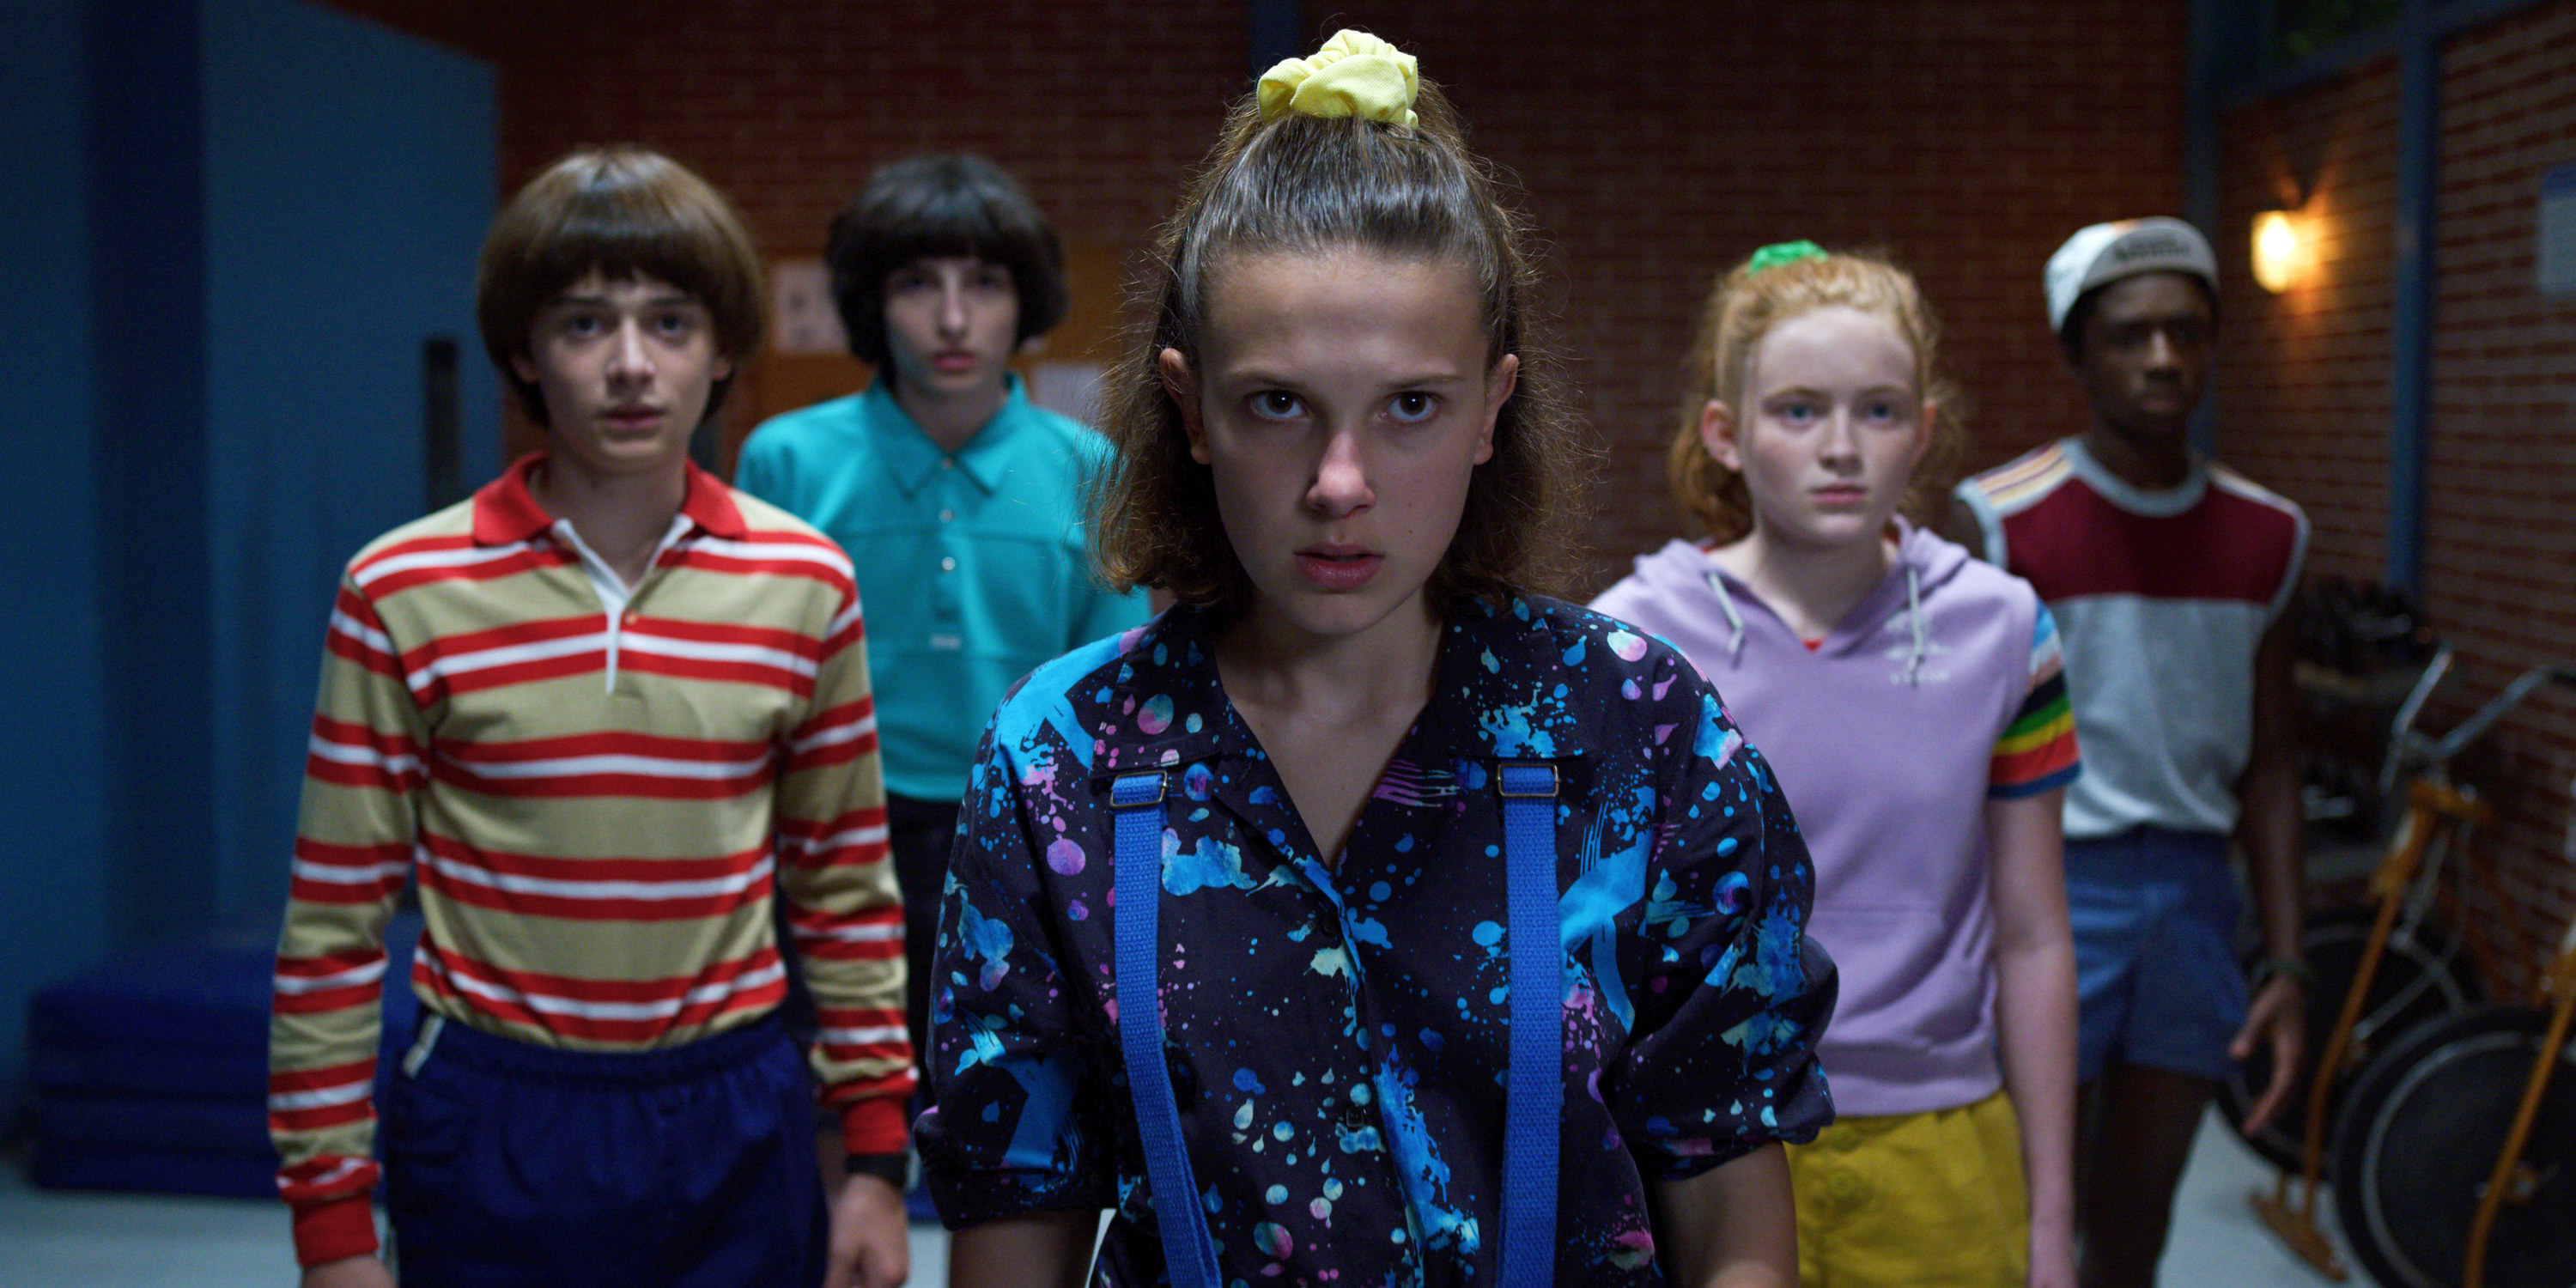 Kids of stranger things standing behind Eleven